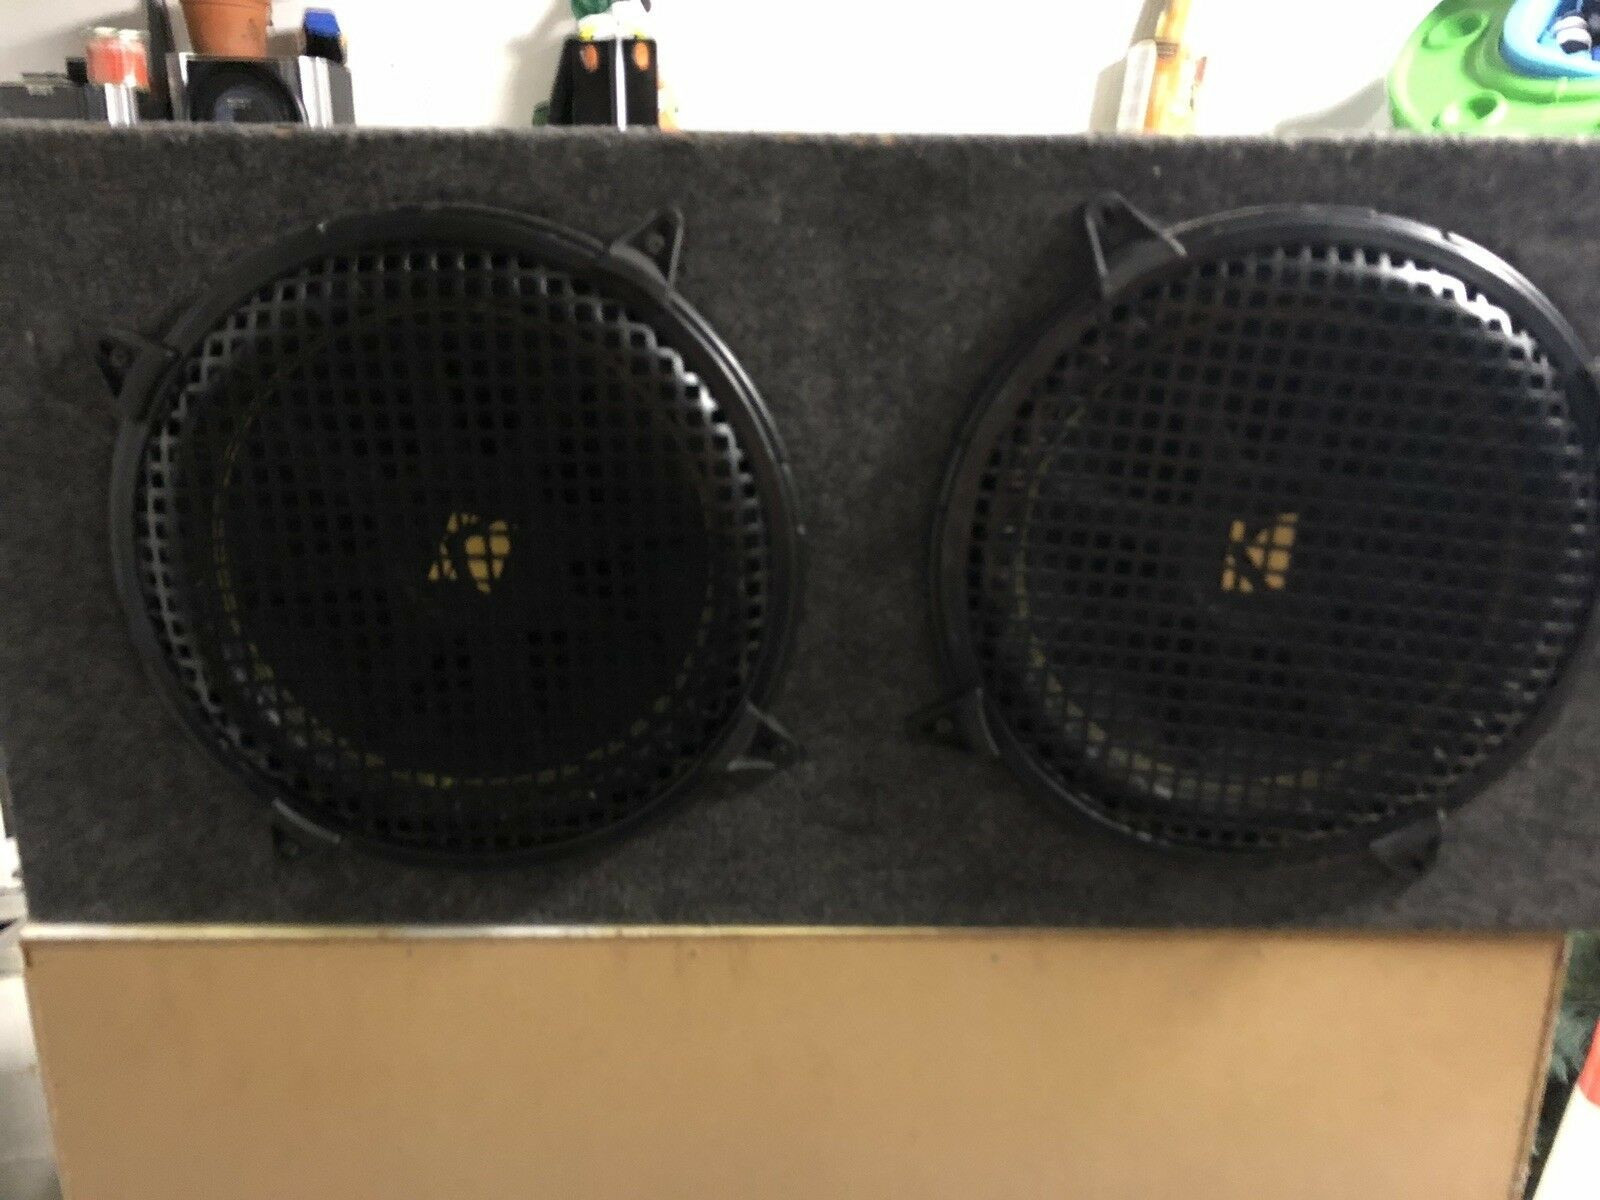 Can be delivered immediately Kicker 10DC122 1-Way 12in. Car Subwoofer for  sale online outlet UK free shipping -fkip.ulb.ac.id